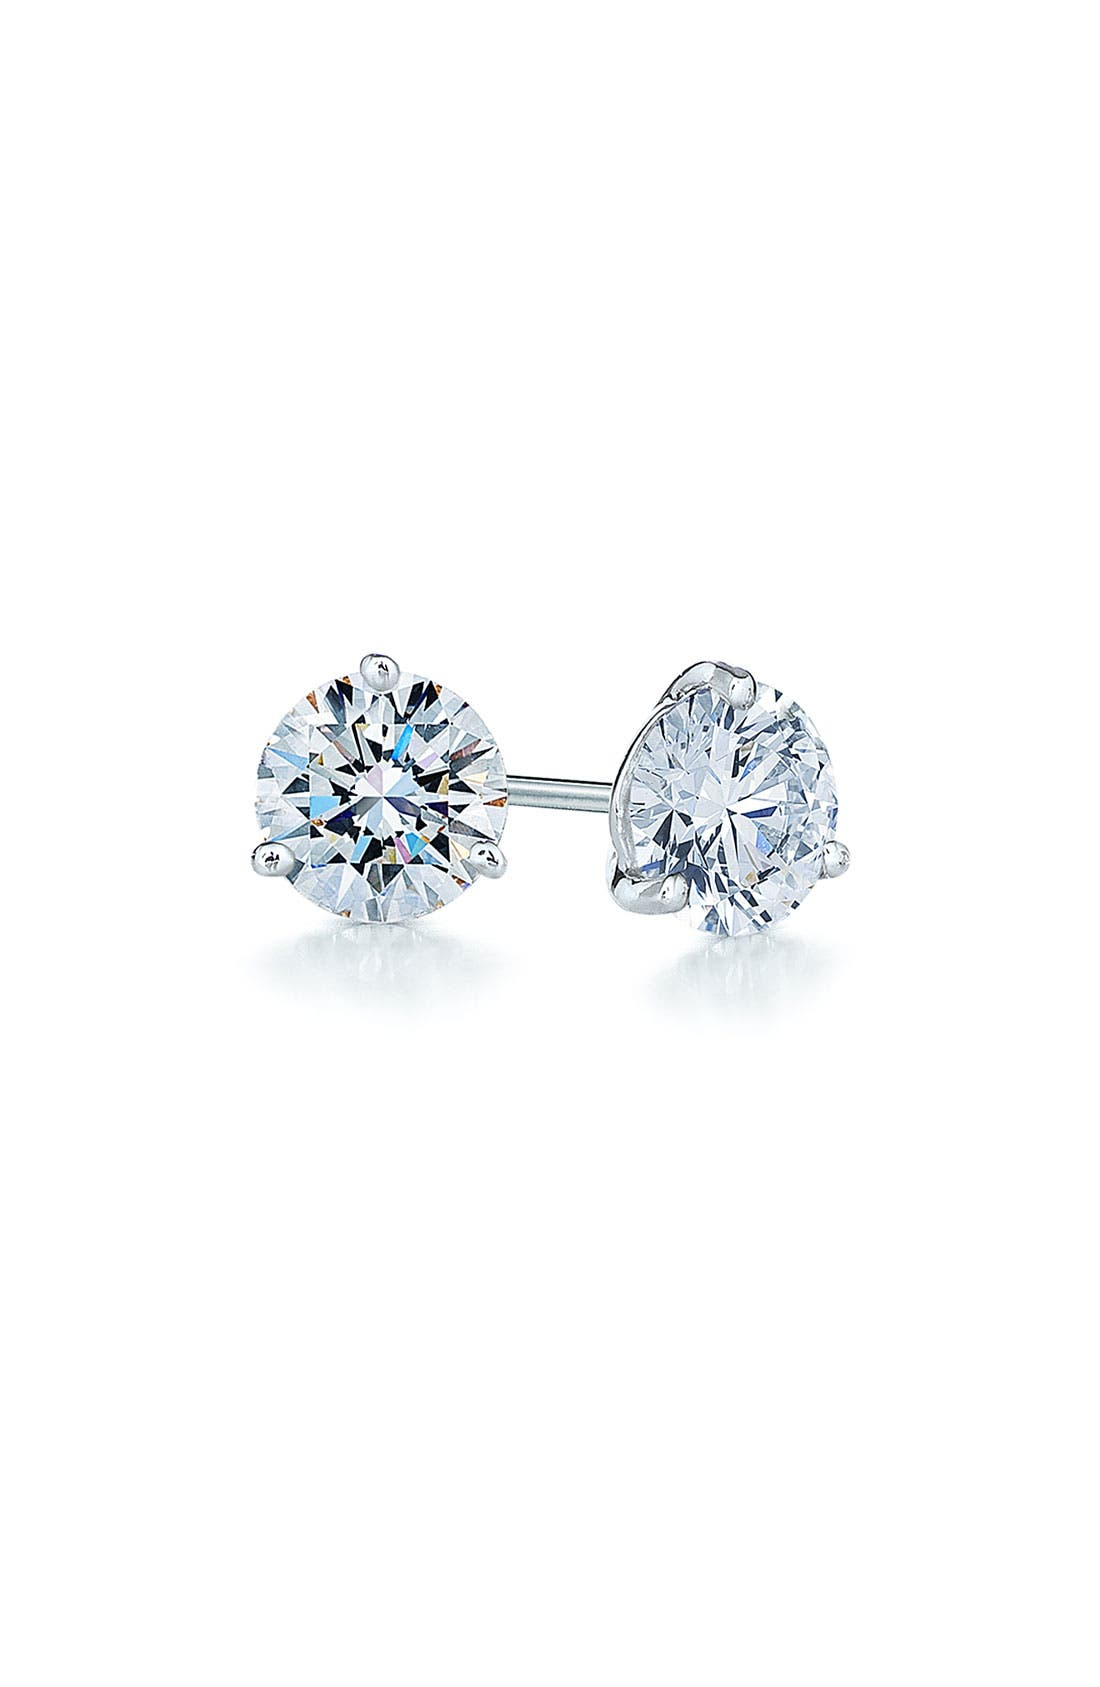 0.25ct tw Diamond & Platinum Stud Earrings,                             Main thumbnail 1, color,                             PLATINUM